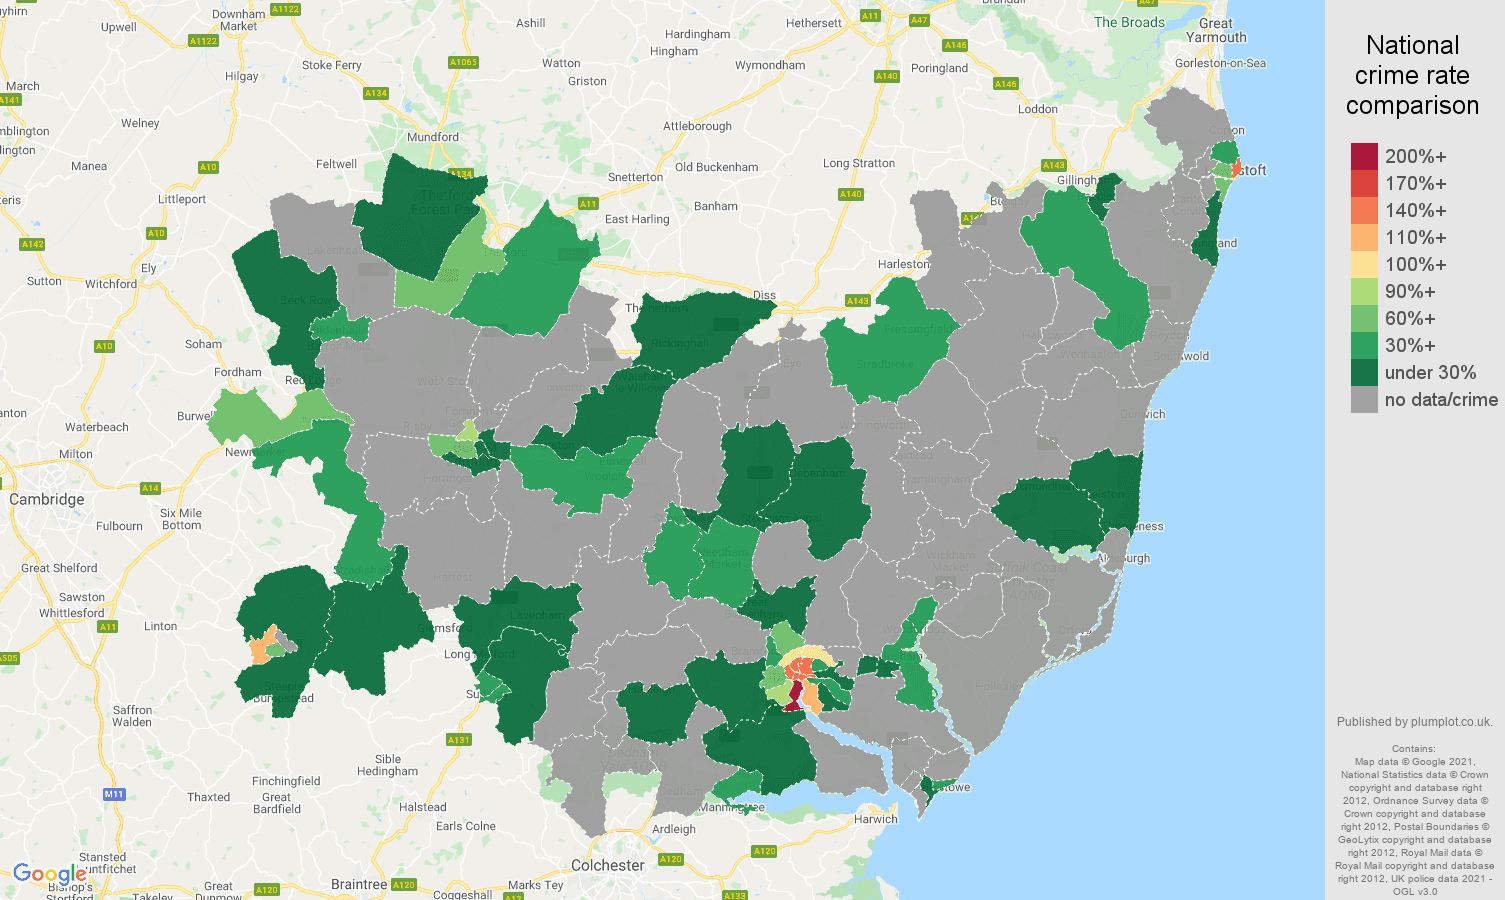 Suffolk robbery crime rate comparison map